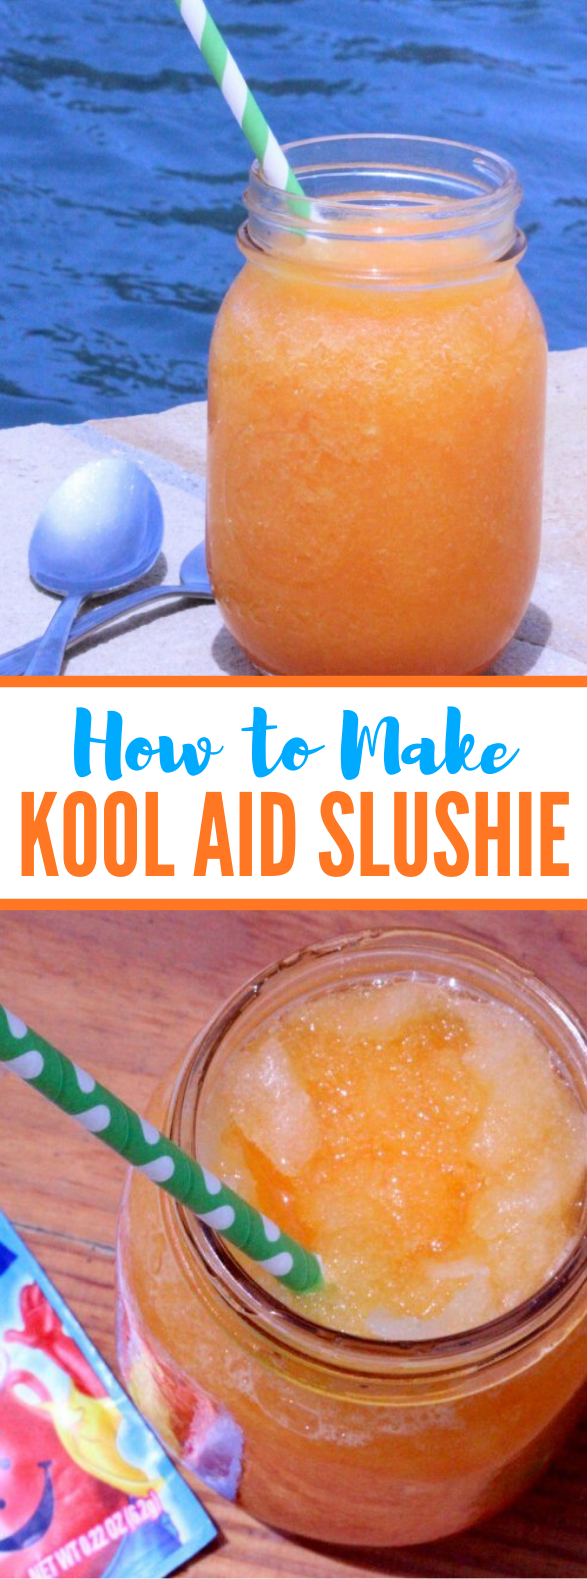 HOW TO MAKE A SLUSHIE WITH KOOL AID #drinks #summerday